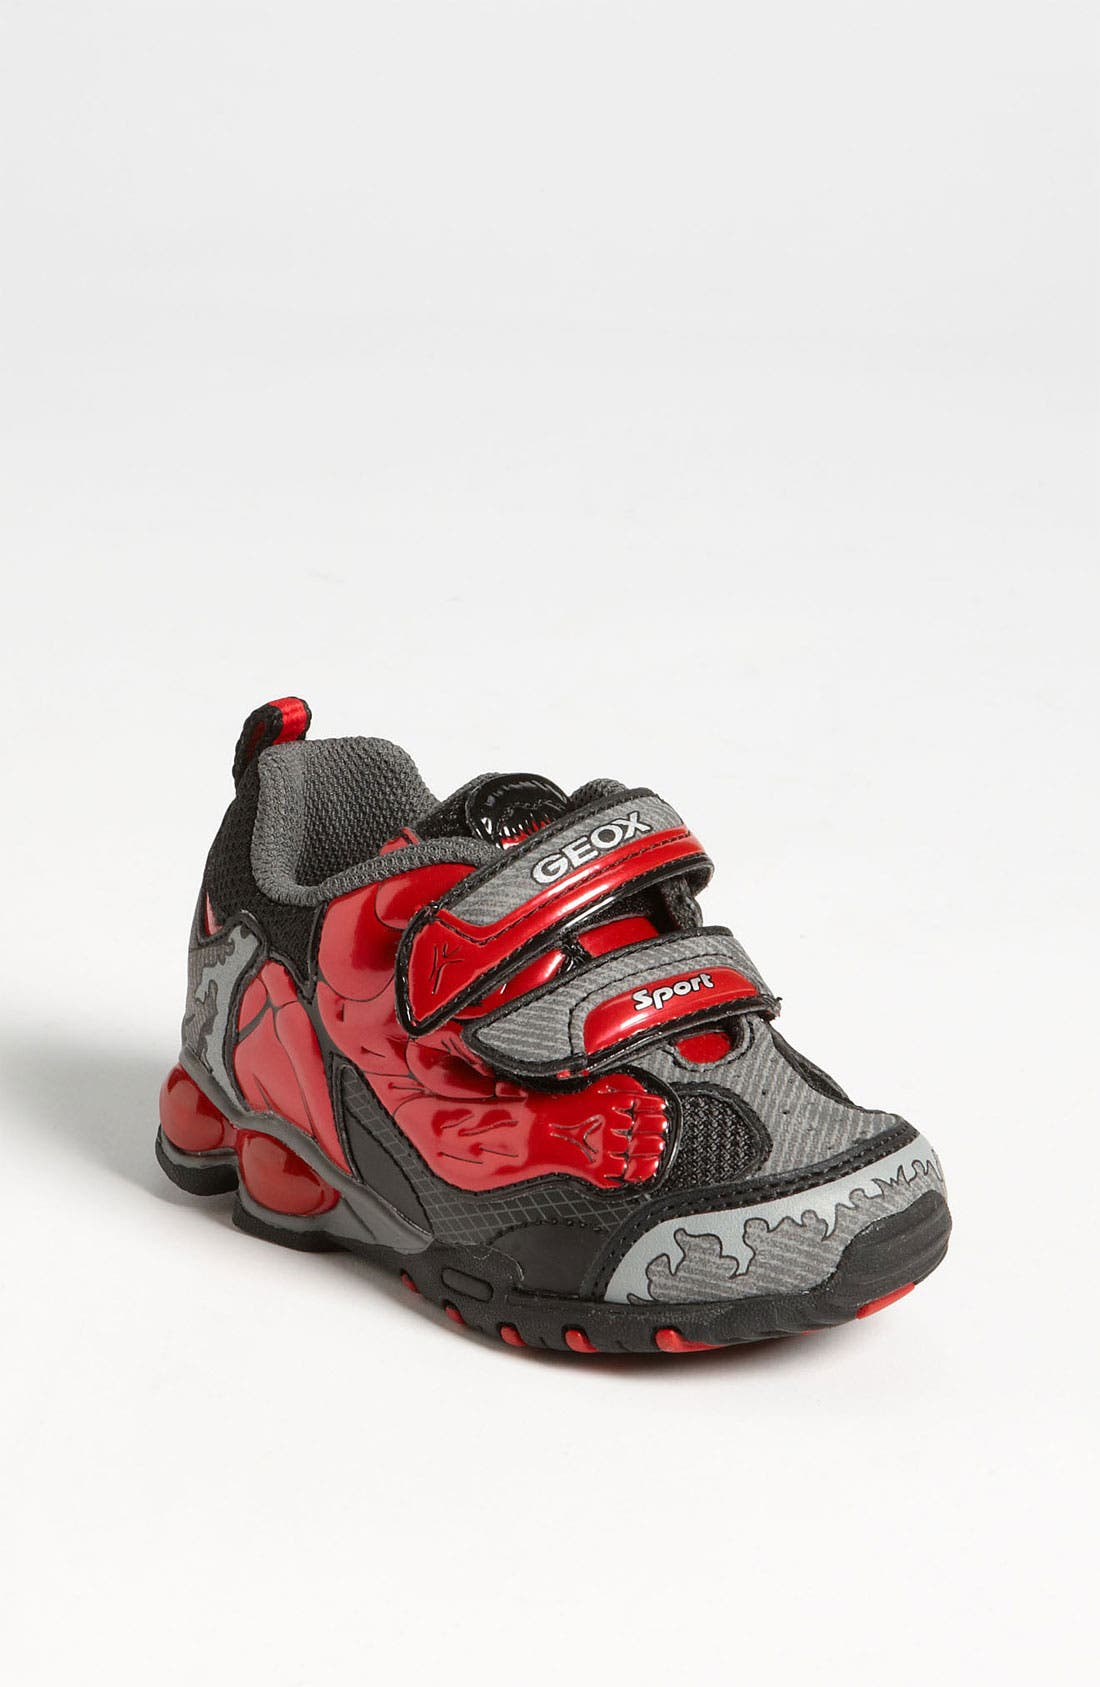 Main Image - Geox 'Fighter' Light-Up Sneaker (Walker & Toddler)